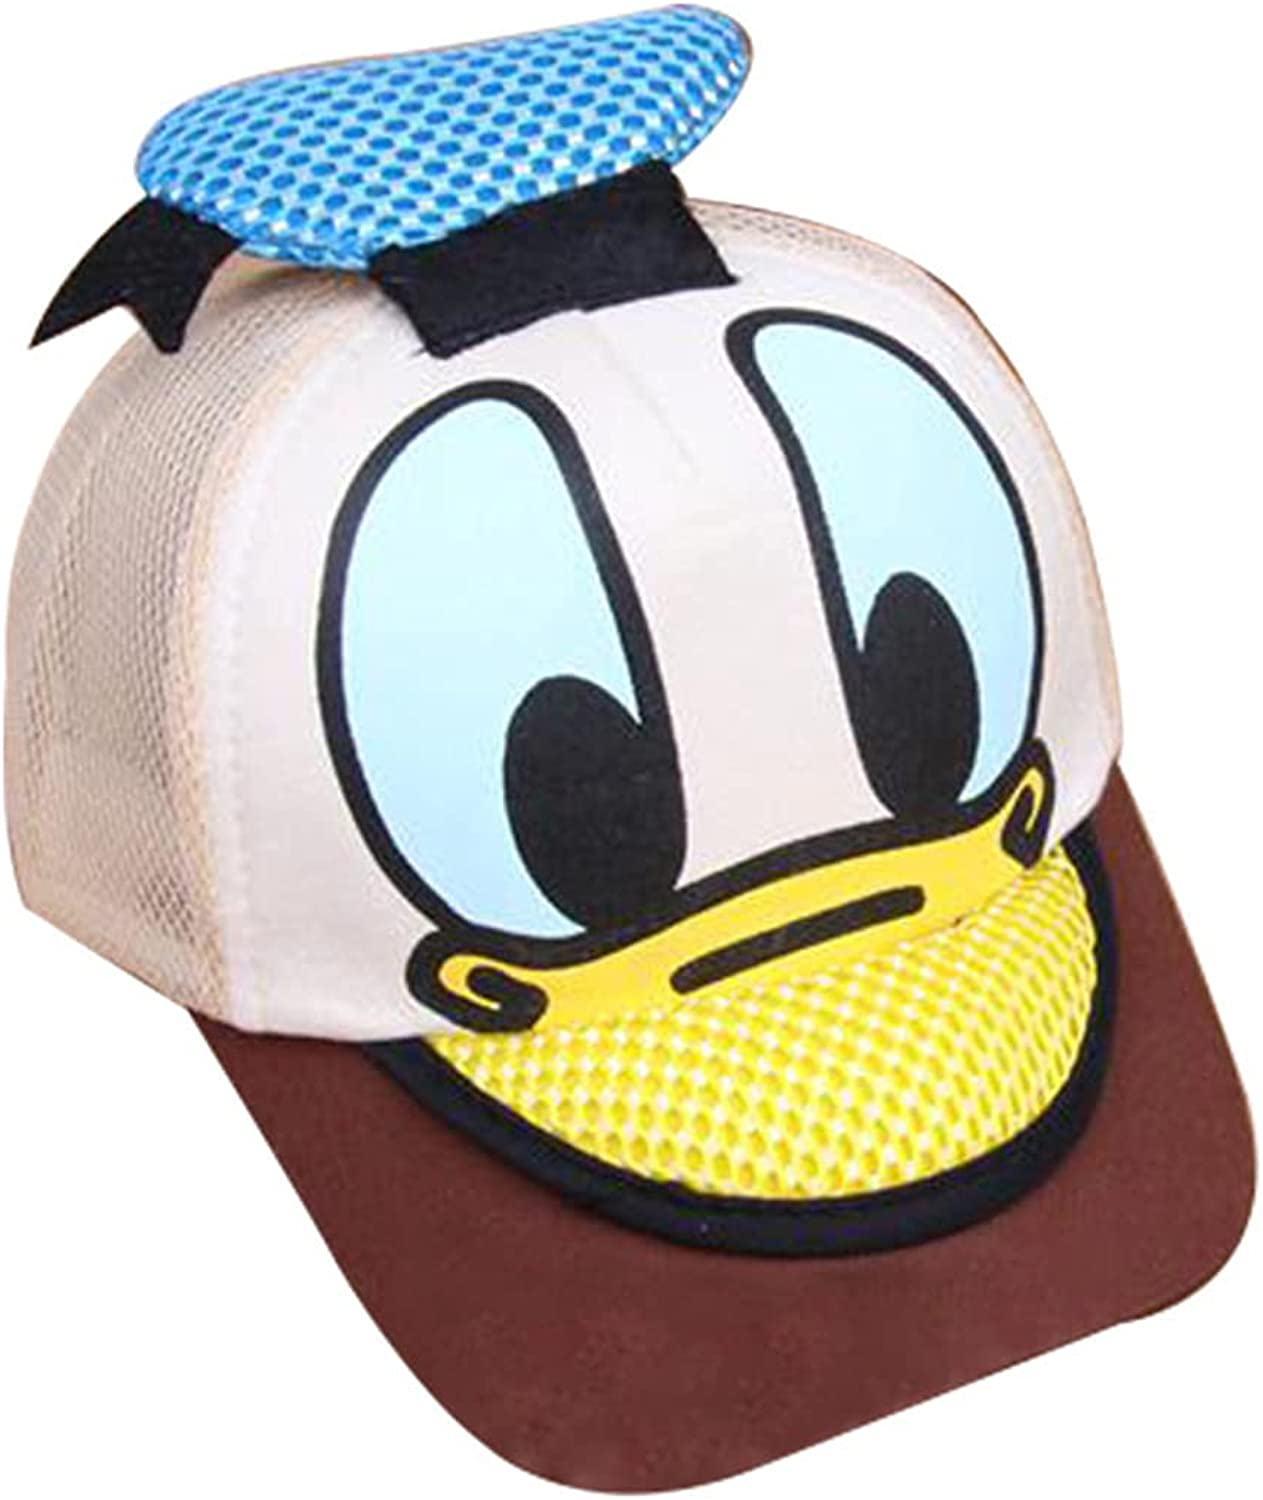 OMG Aquatics Toddler Baseball Hat Kids Protective Cartoon Baseball Caps Hip Hop Cool Hats for Boys and Girls 2-8 Years (Coffee) : Everything Else